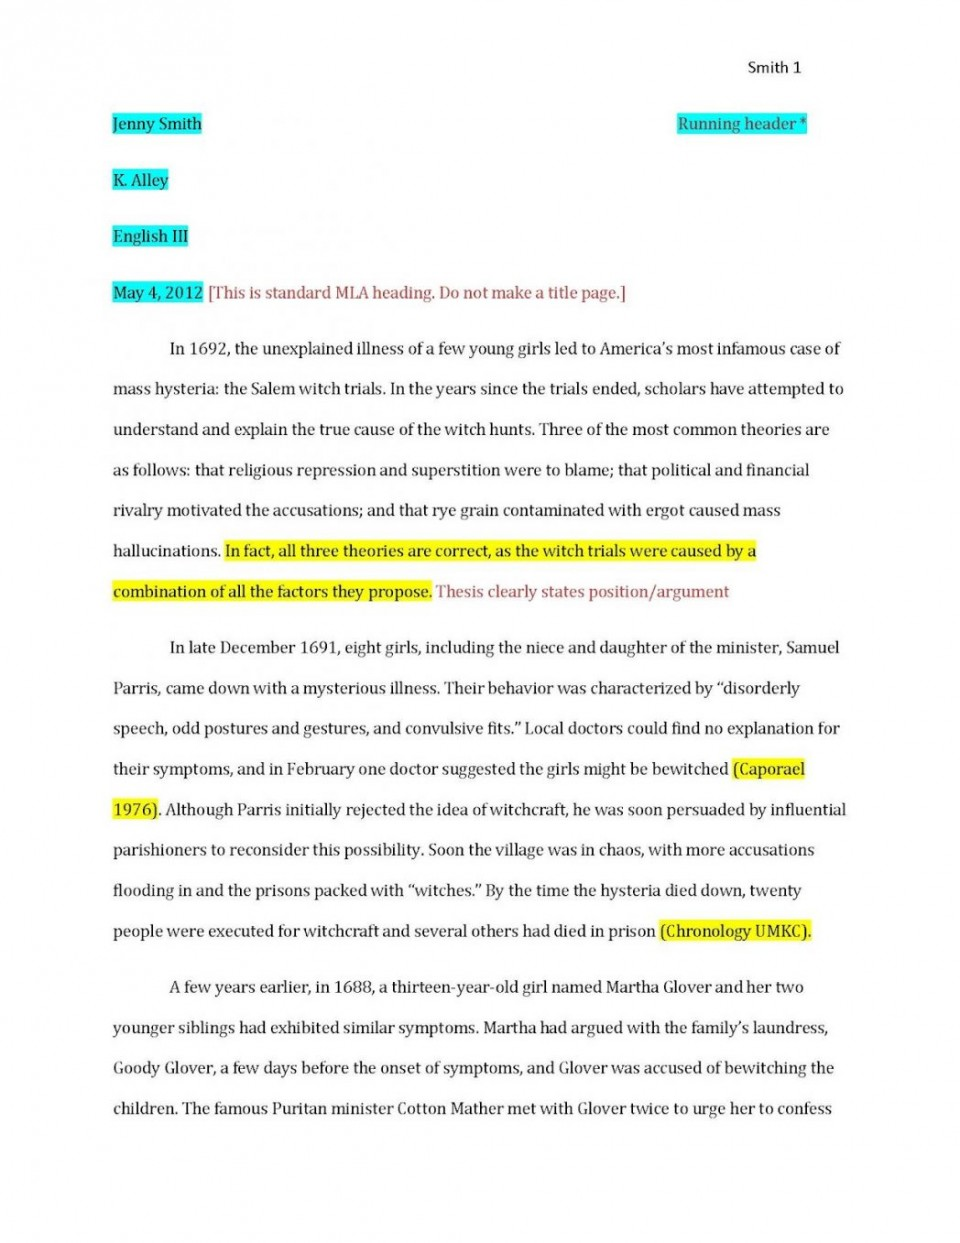 002 Mla Format Essay Generator Author Date References System Ready Set Automaticpaper P 1048x1357 Wondrous Paper Software Download Title Reddit Free 960